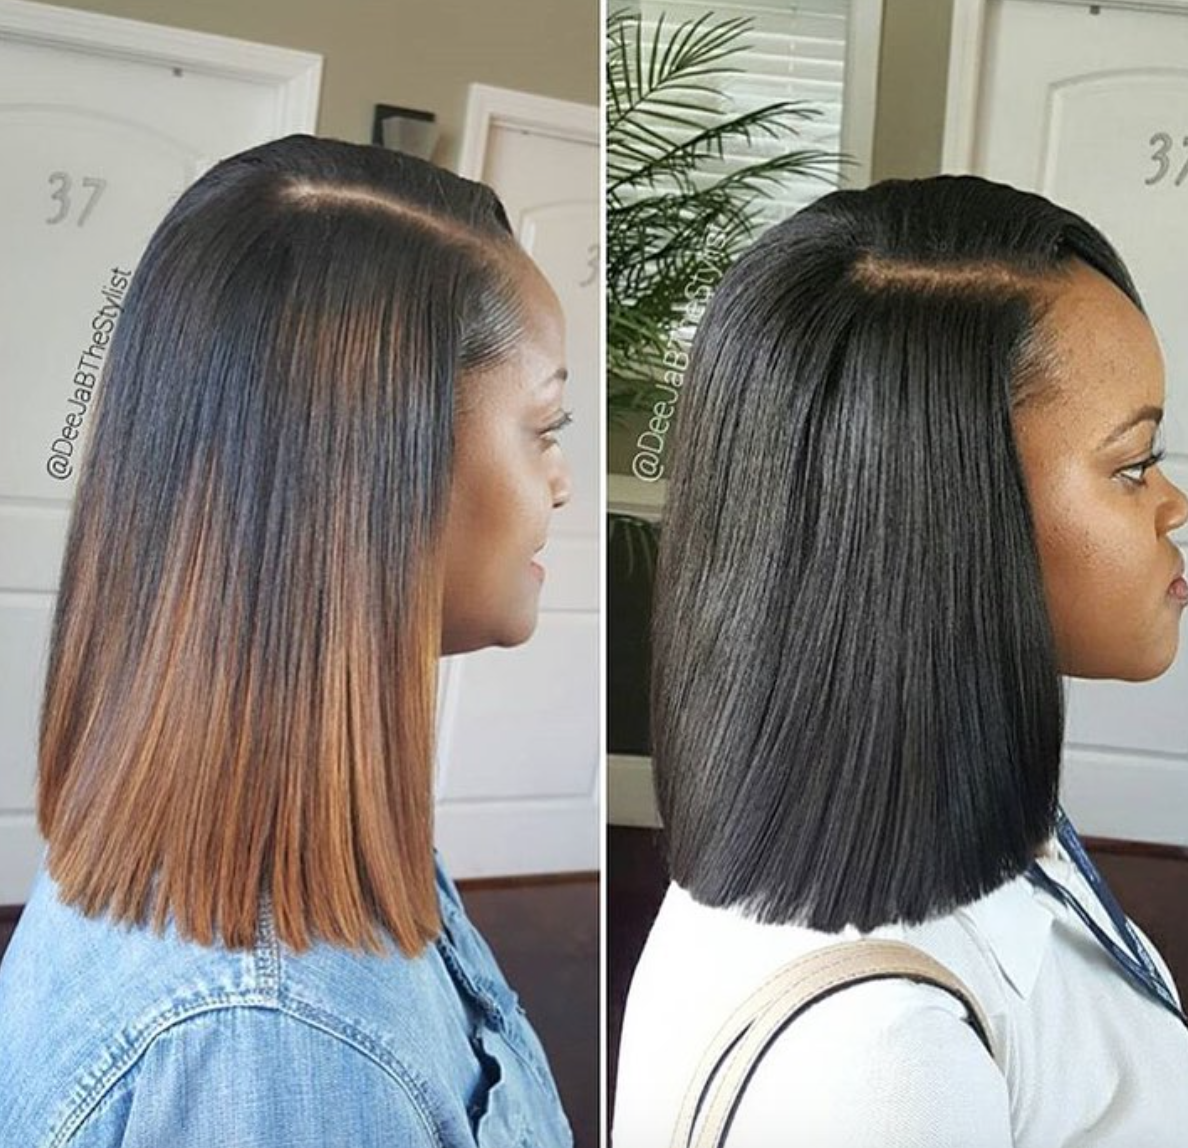 Amazing Sew In Vs Quick Weave By Deejabthestylist Quick Weave Hairstyles Hair Weave Hairstyles